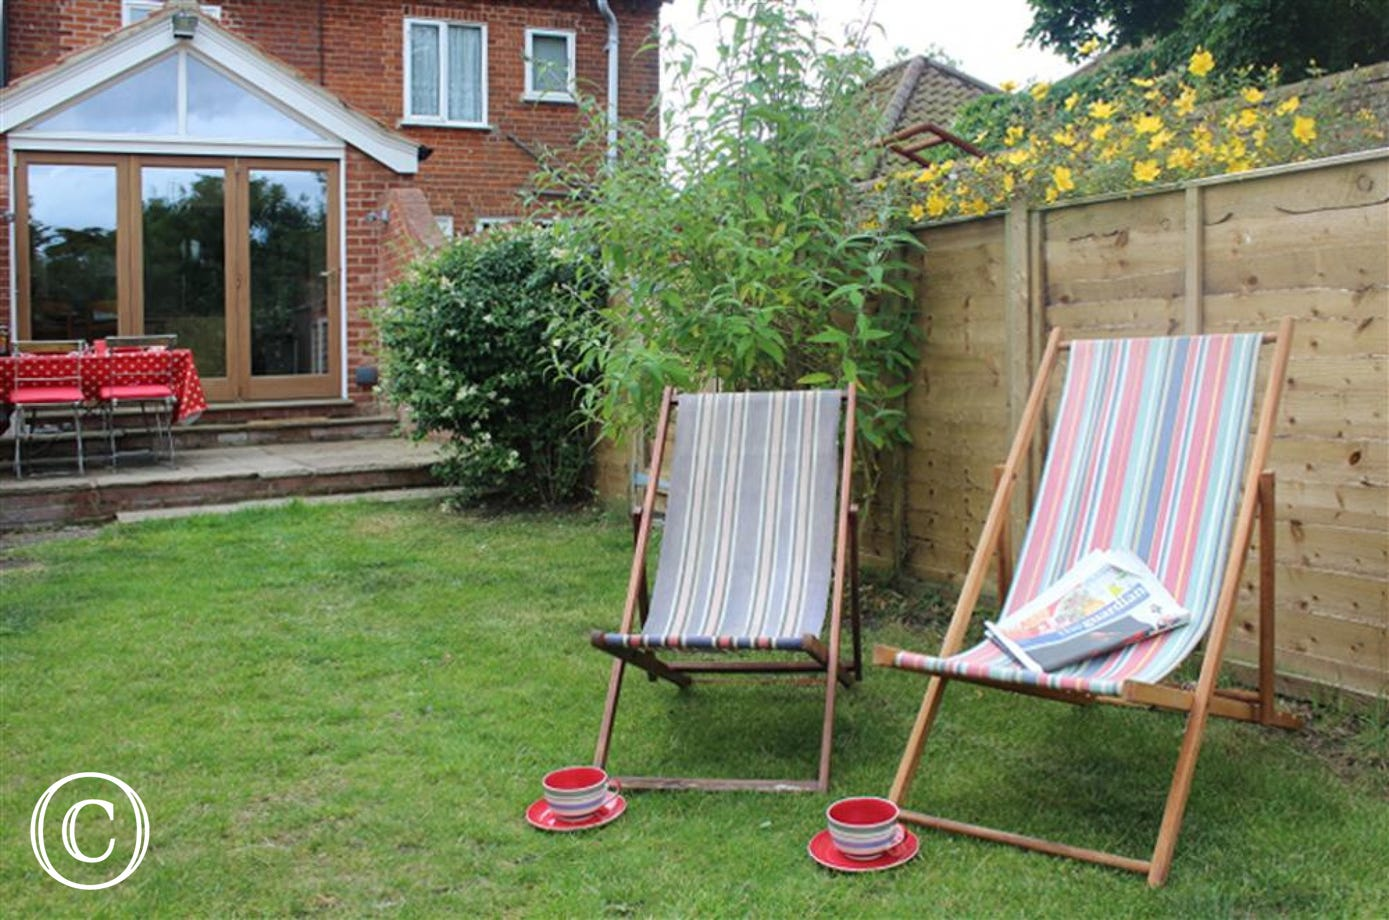 Sink down into these stripy deck chairs and enjoy a nice cup of tea in these bright red cups.